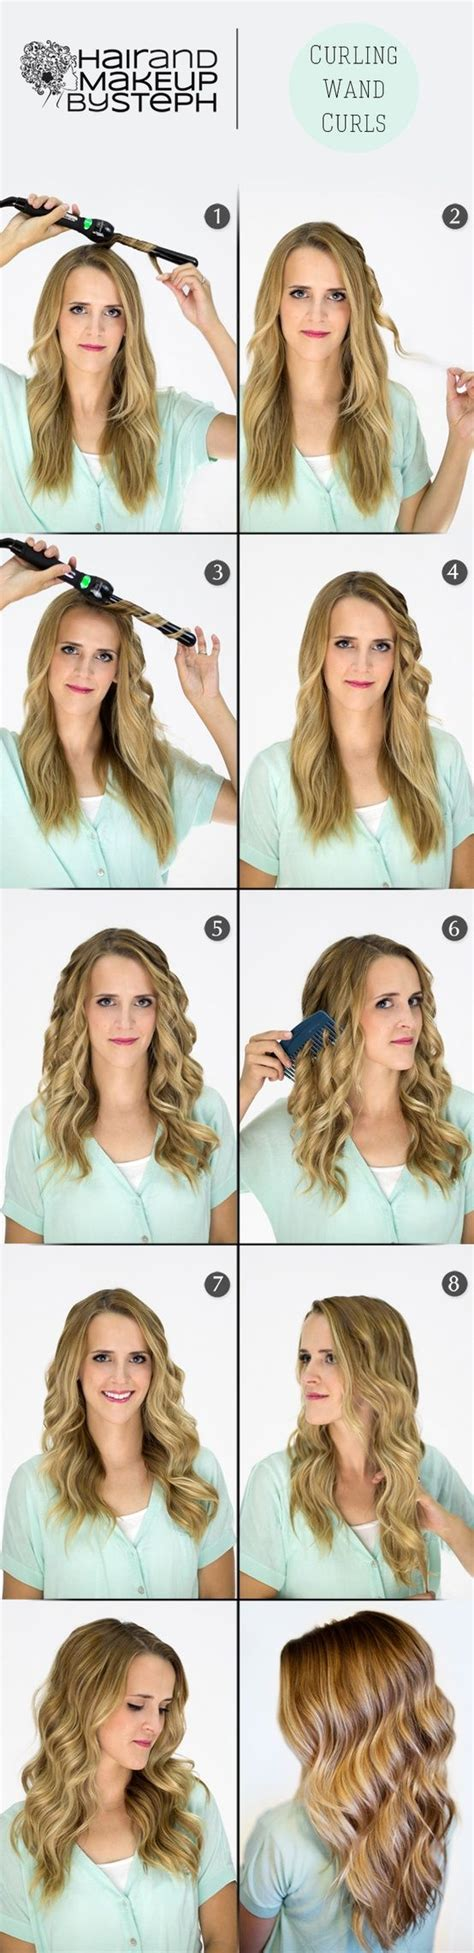 curling wand waves hair styles pinterest curls